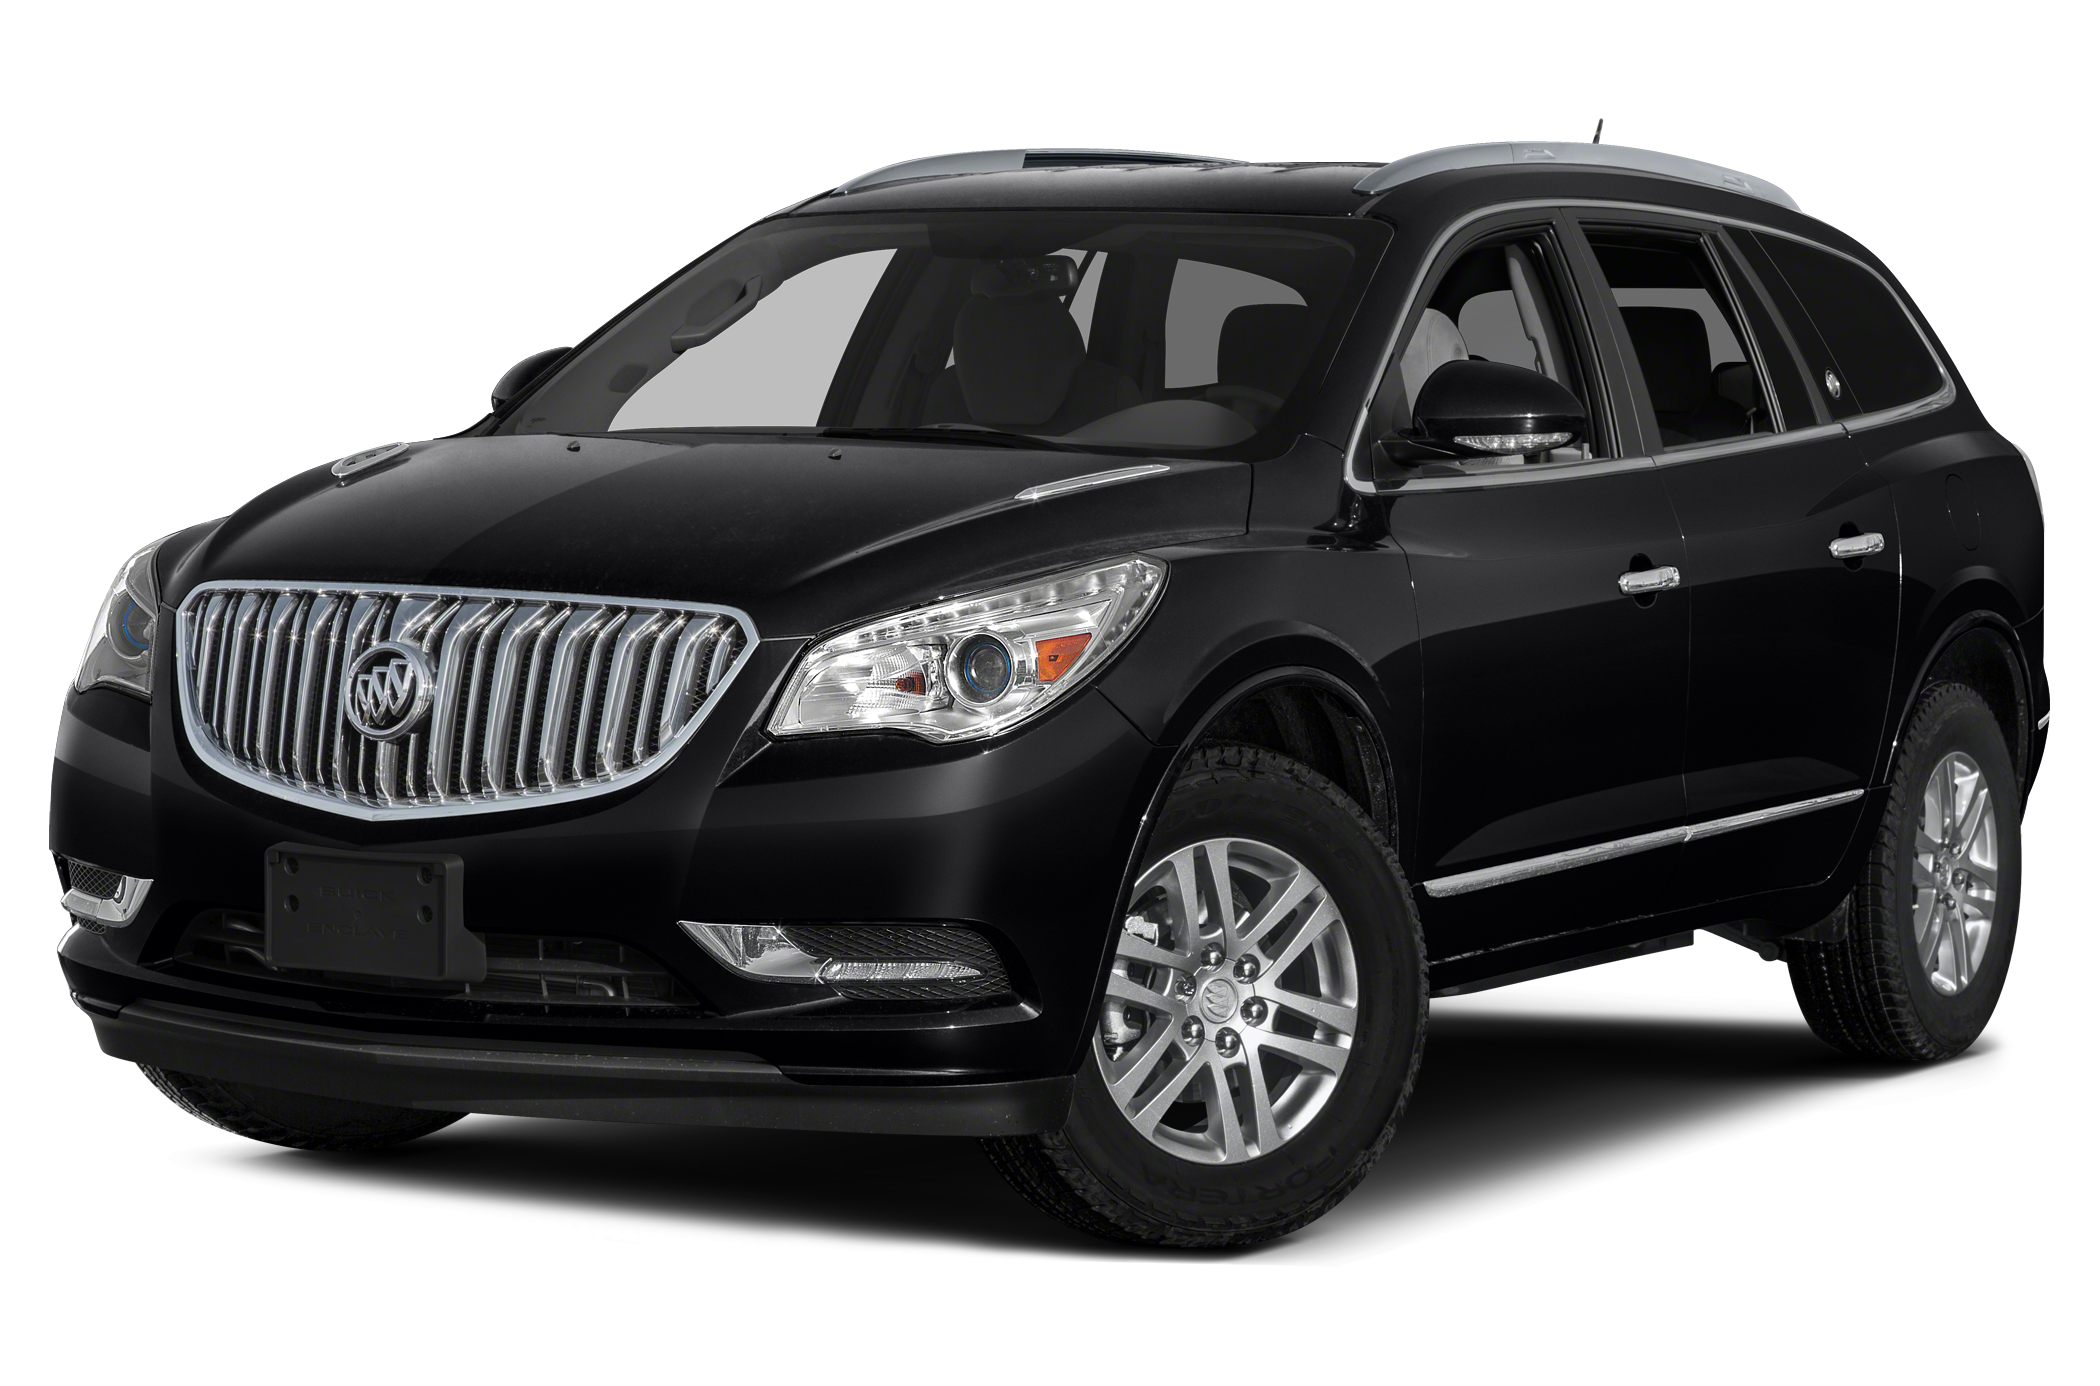 mall gmc buick models enclave in beckley new auto select wv